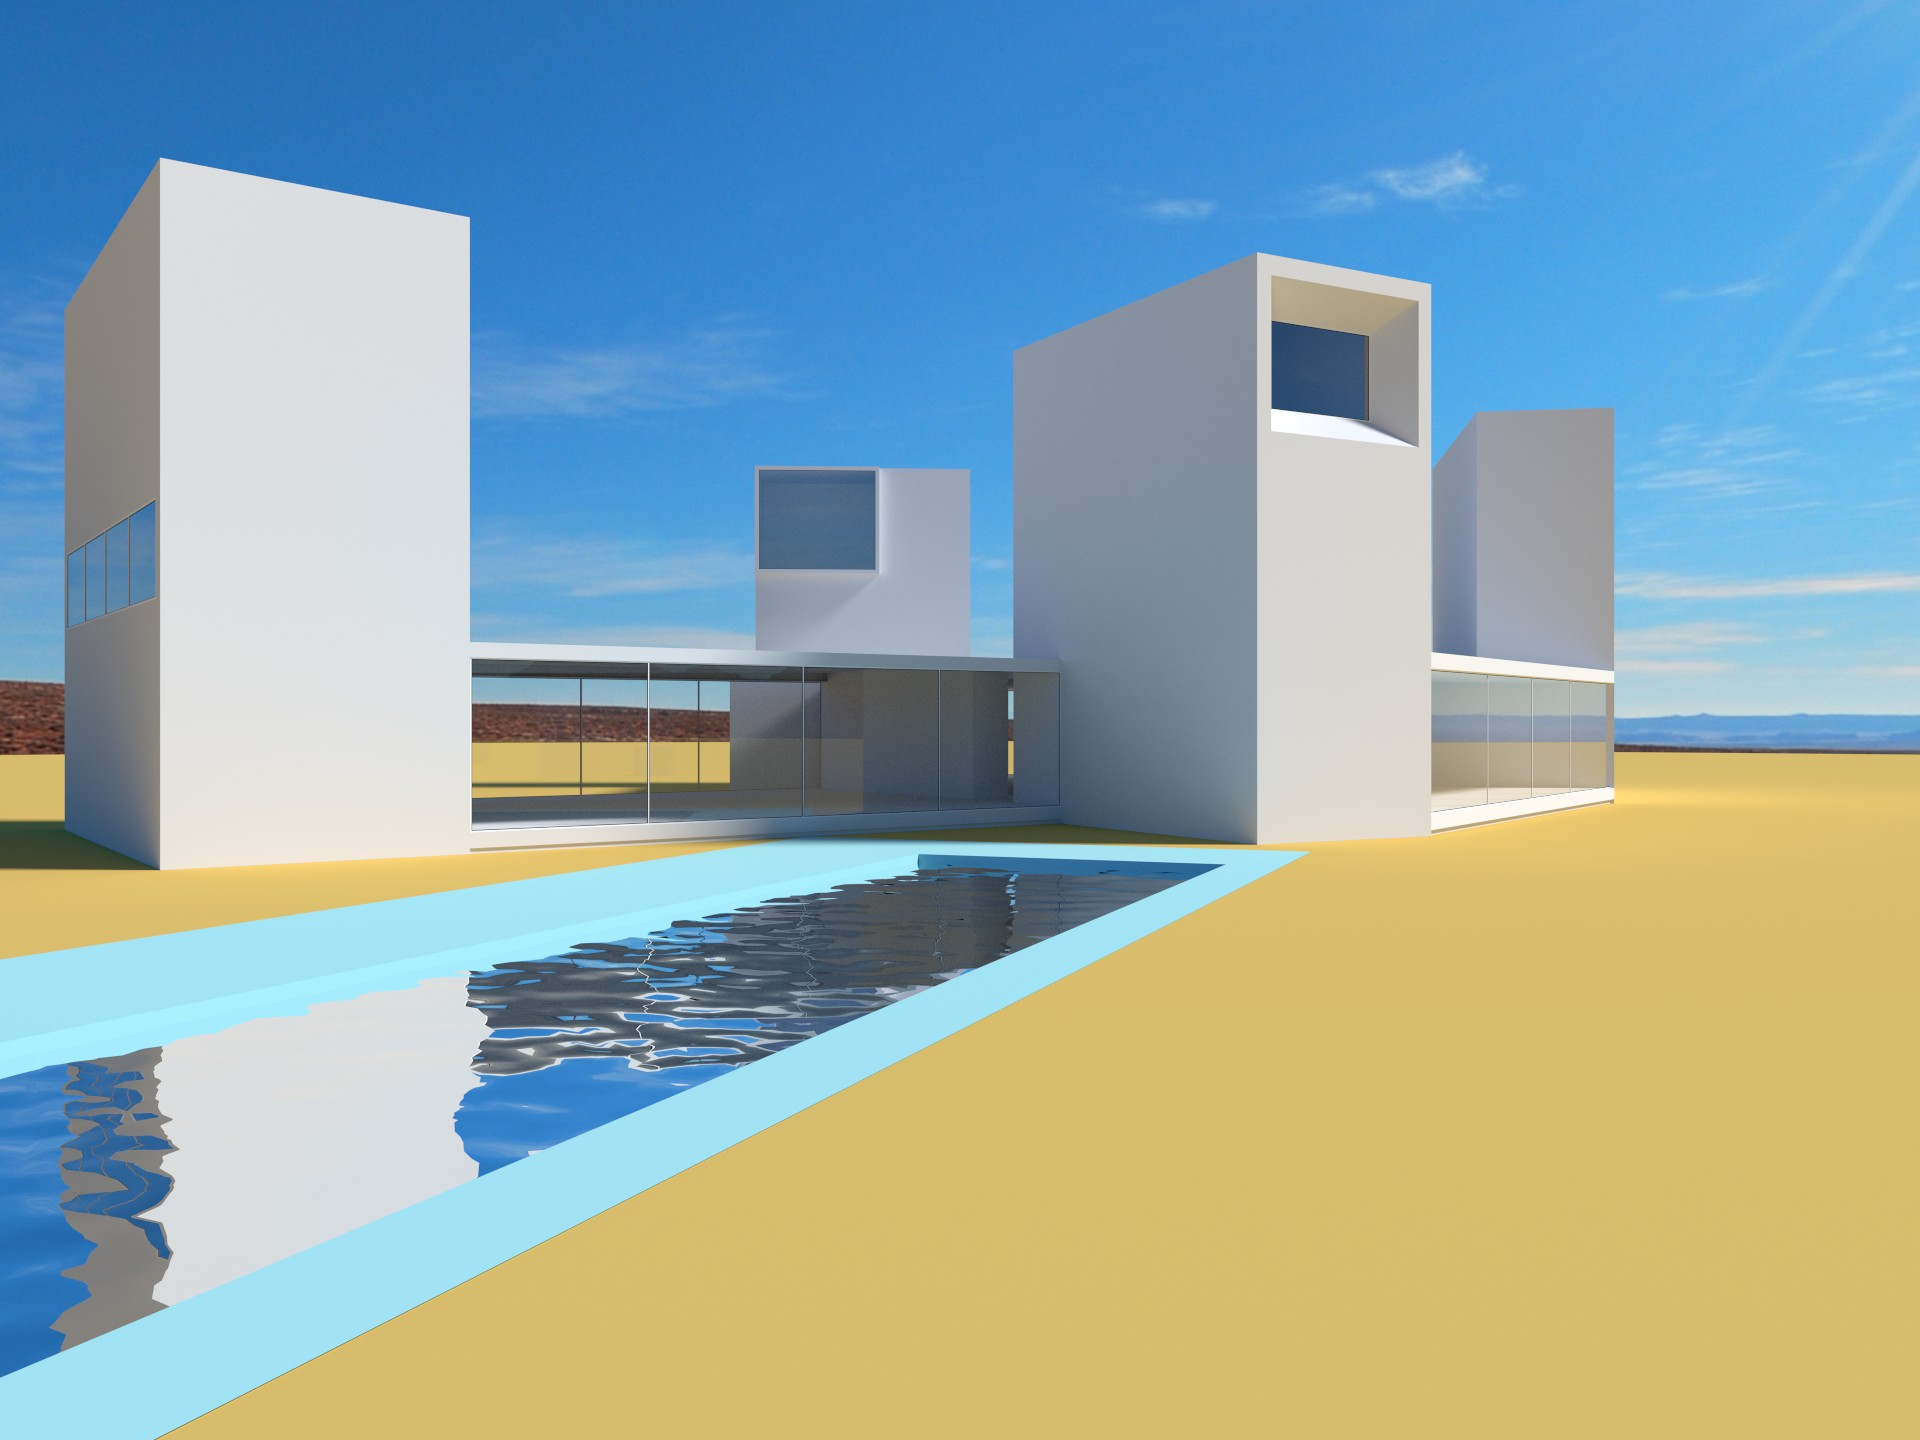 Architecture Academy Module 2. Homework Image 1.